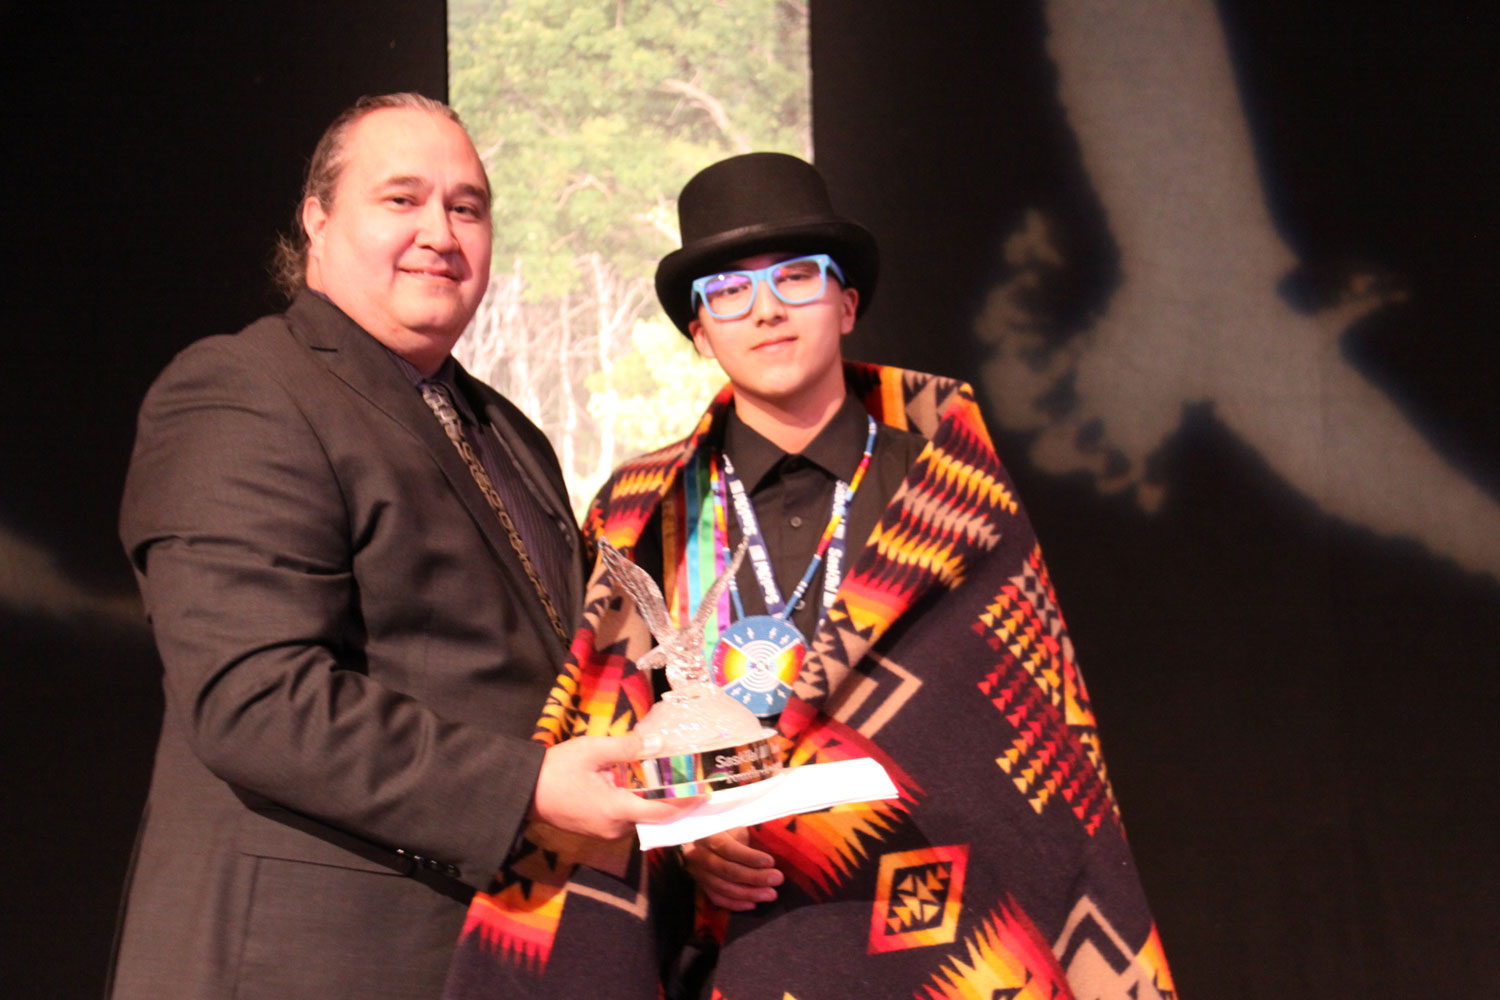 Lionel Tootoosis of SIGA presented the Culture award to Bluejay Linklater